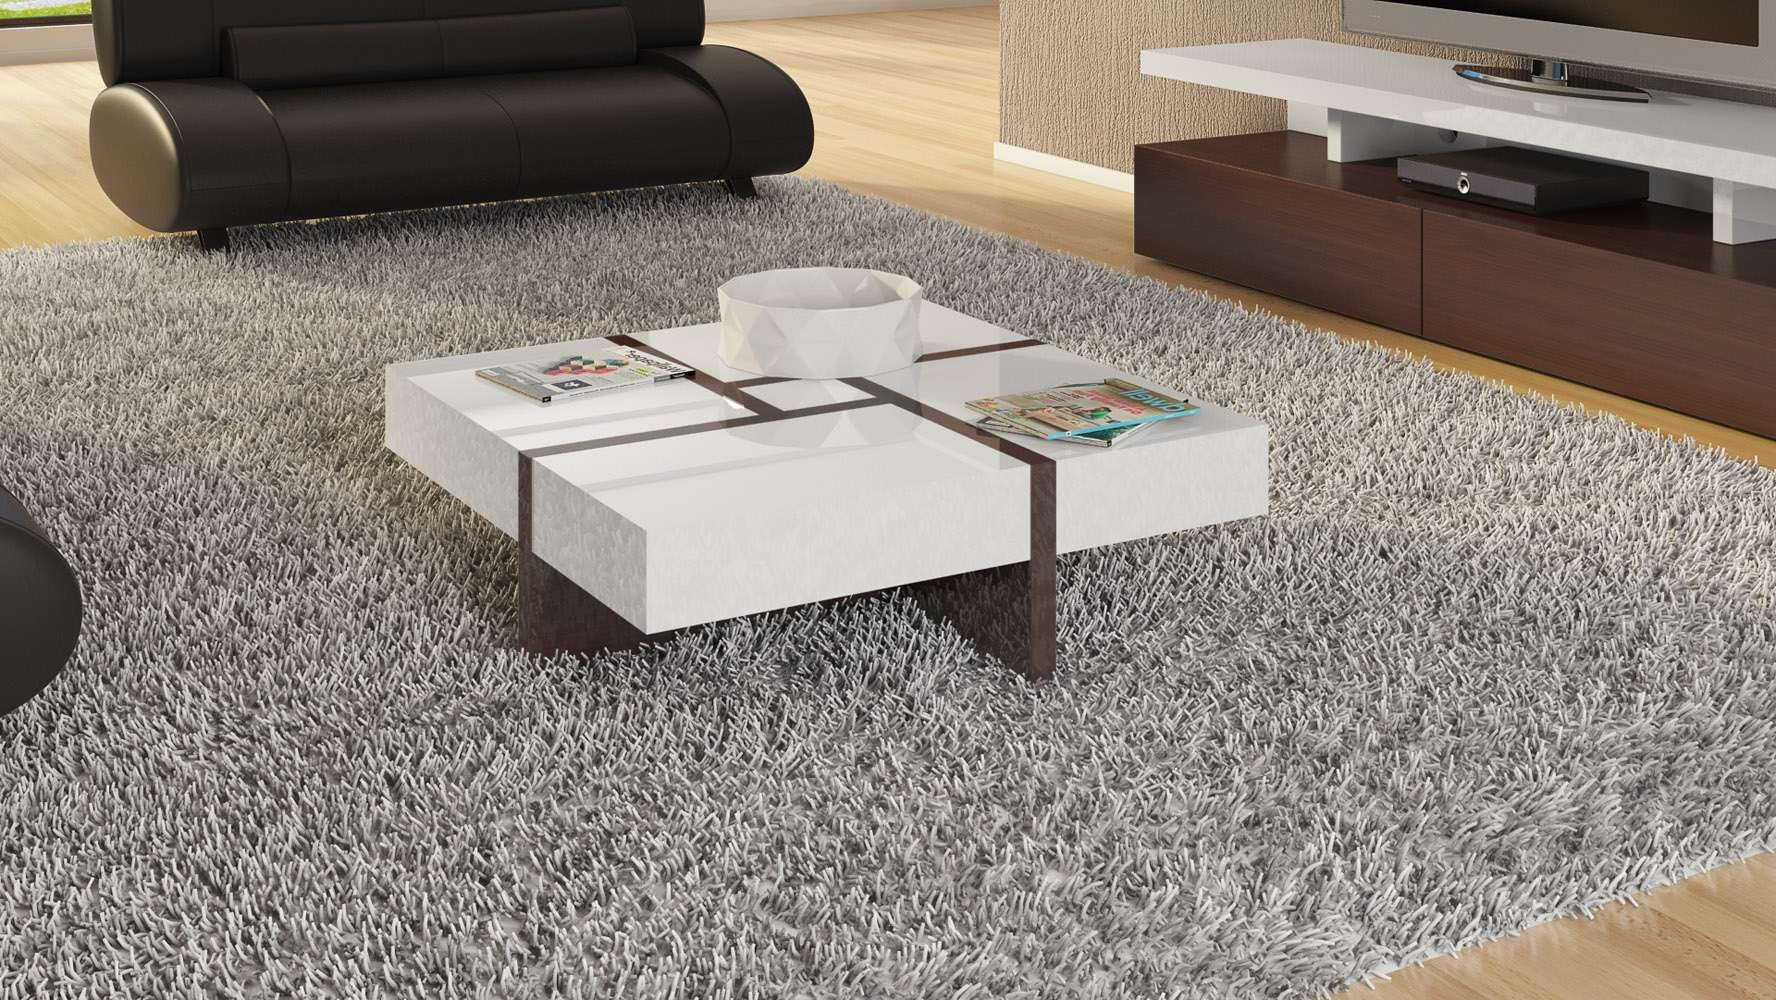 Mcintosh High Gloss Coffee Table With Storage – White Square Within Recent Gloss Coffee Tables (View 8 of 20)